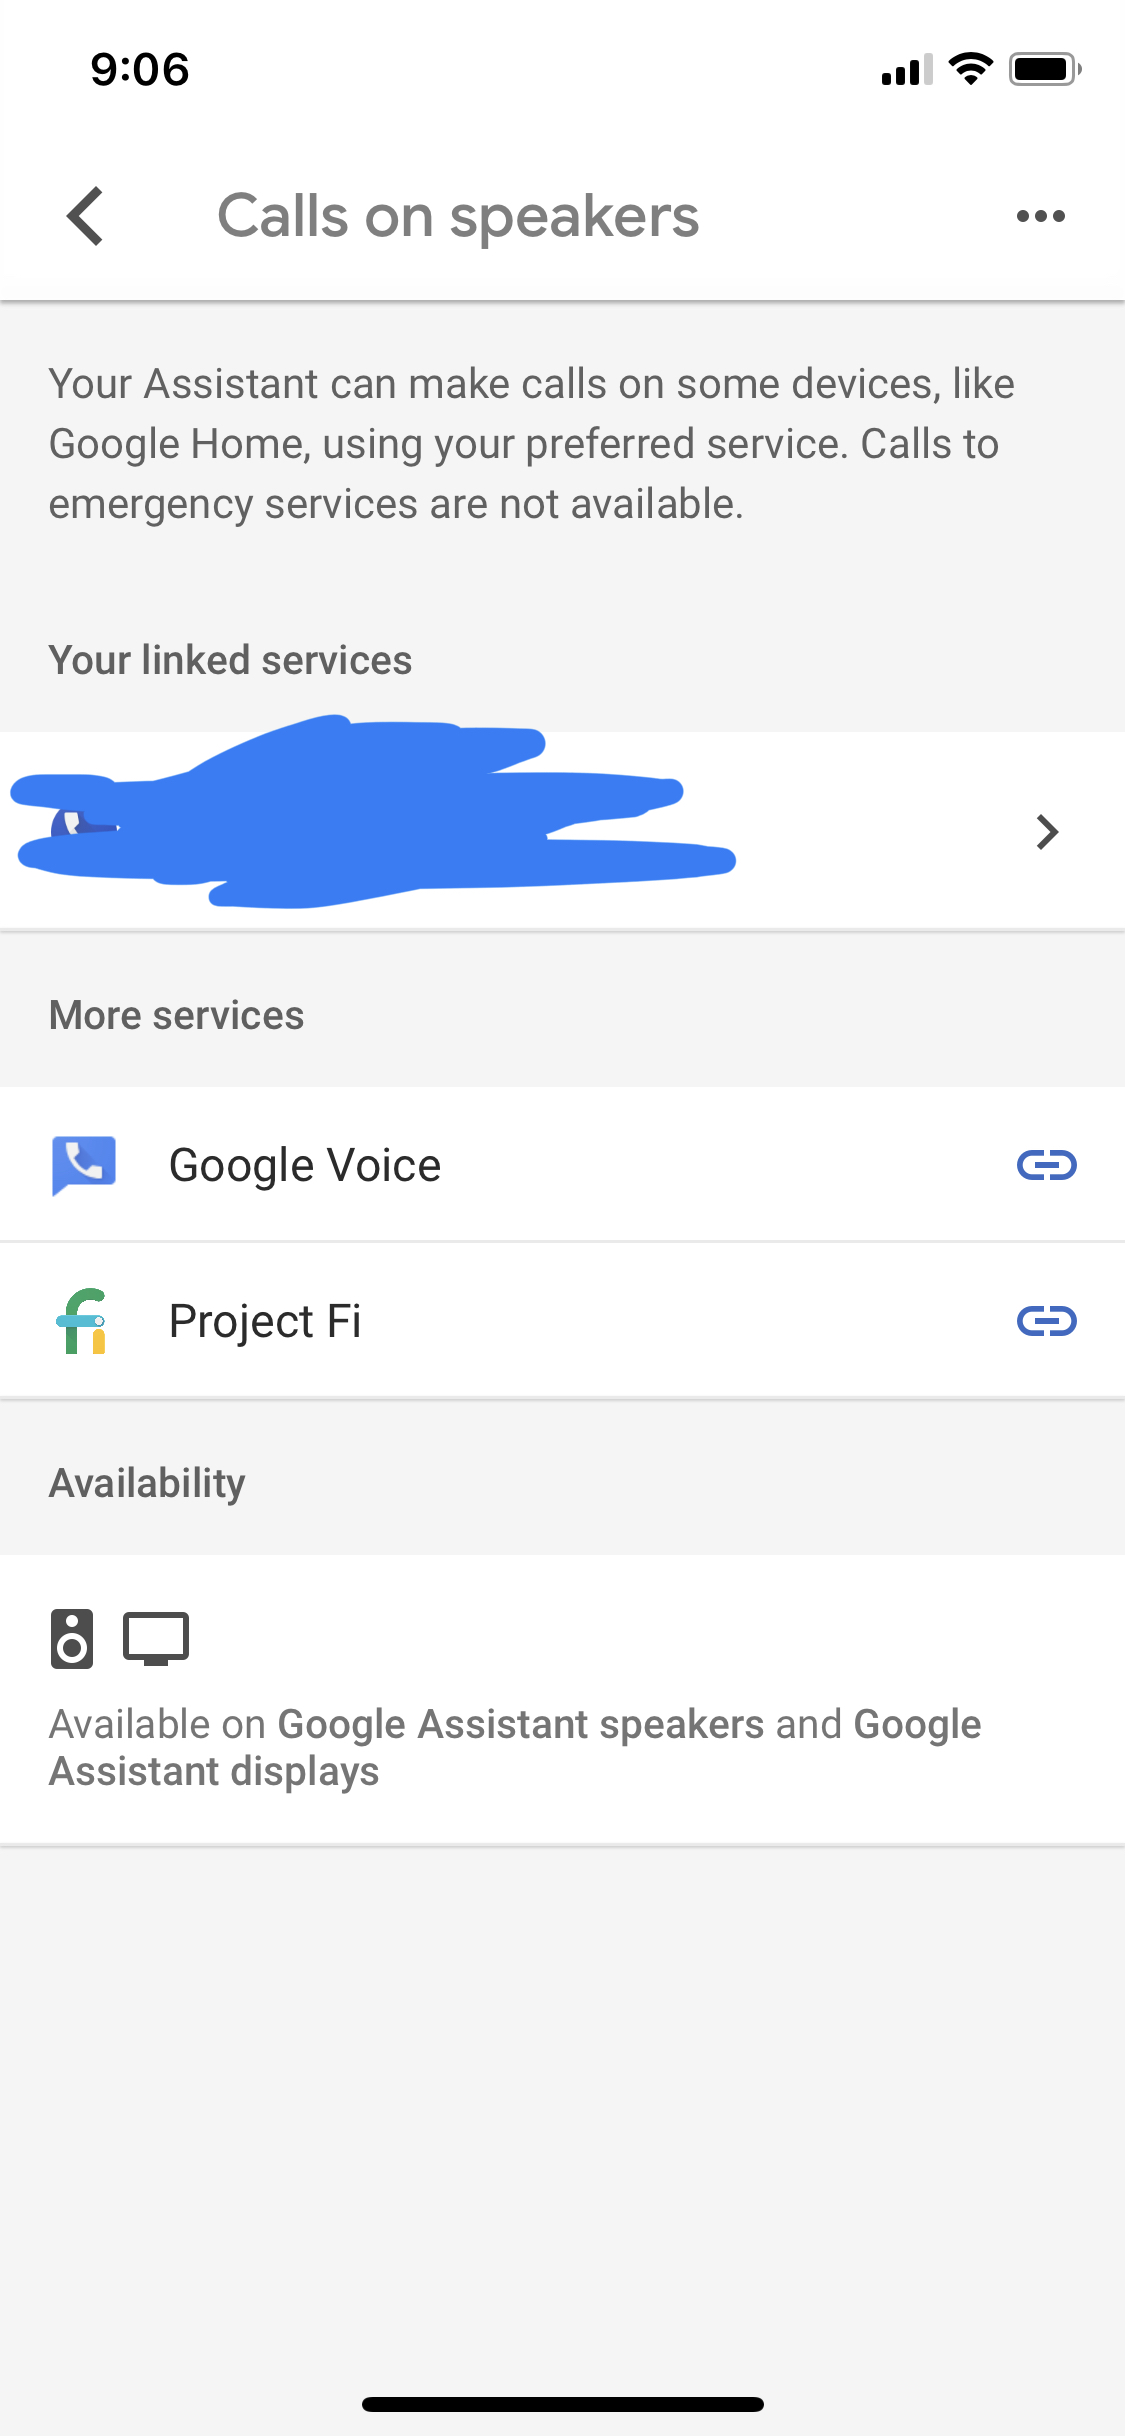 How do I sync my Google Home with my iPhone to make phone